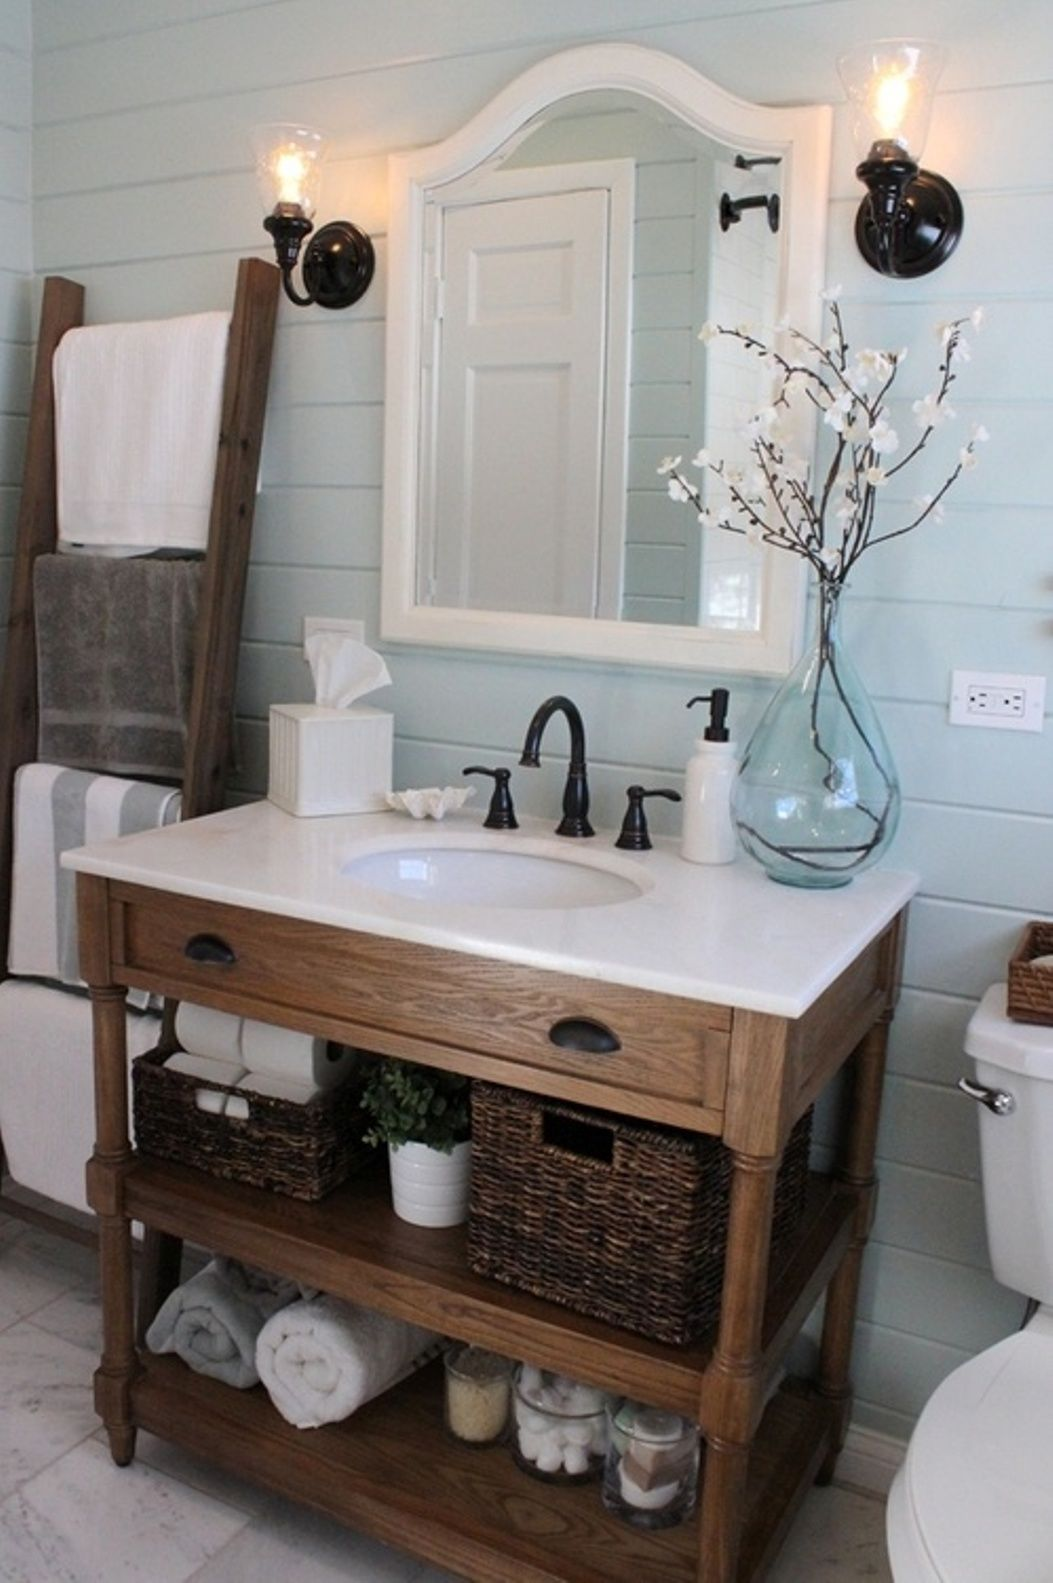 4 cottage bath with painted shiplap and vintage hardware - Rustic Bathroom